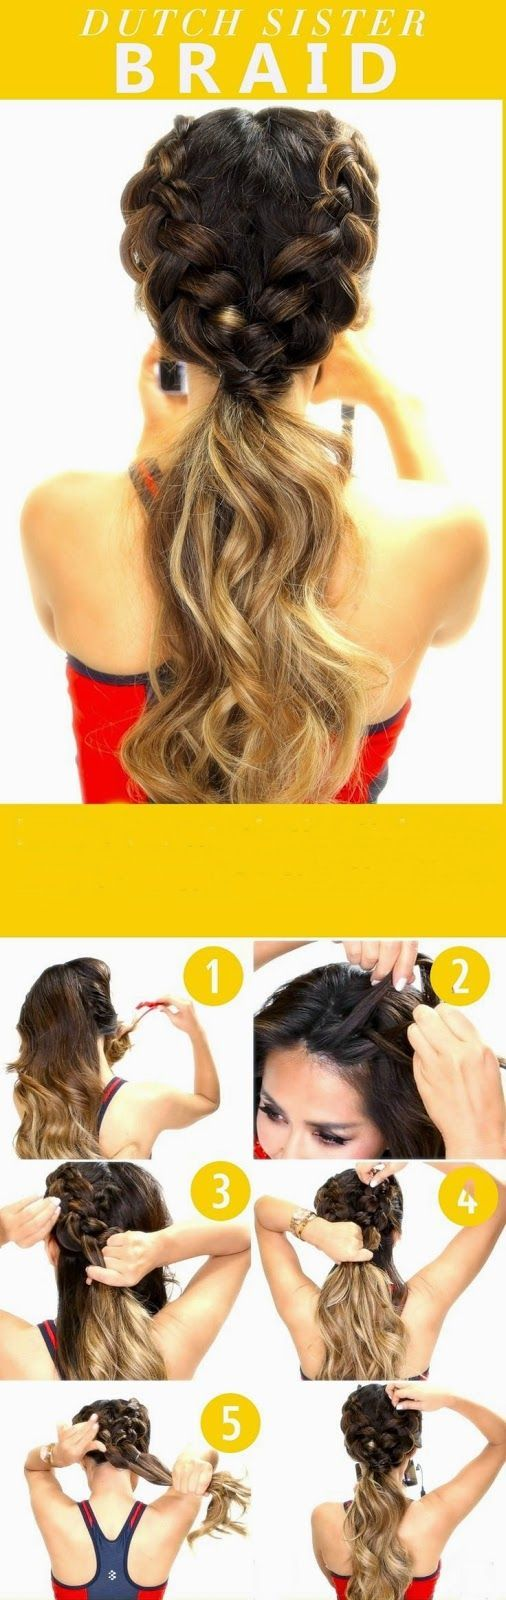 5 Easy Mermaid Hairstyles for Summer. Perfect for mermaiding in your genuine, real, swim-able mermaid tail from Fin Fun Mermaid.